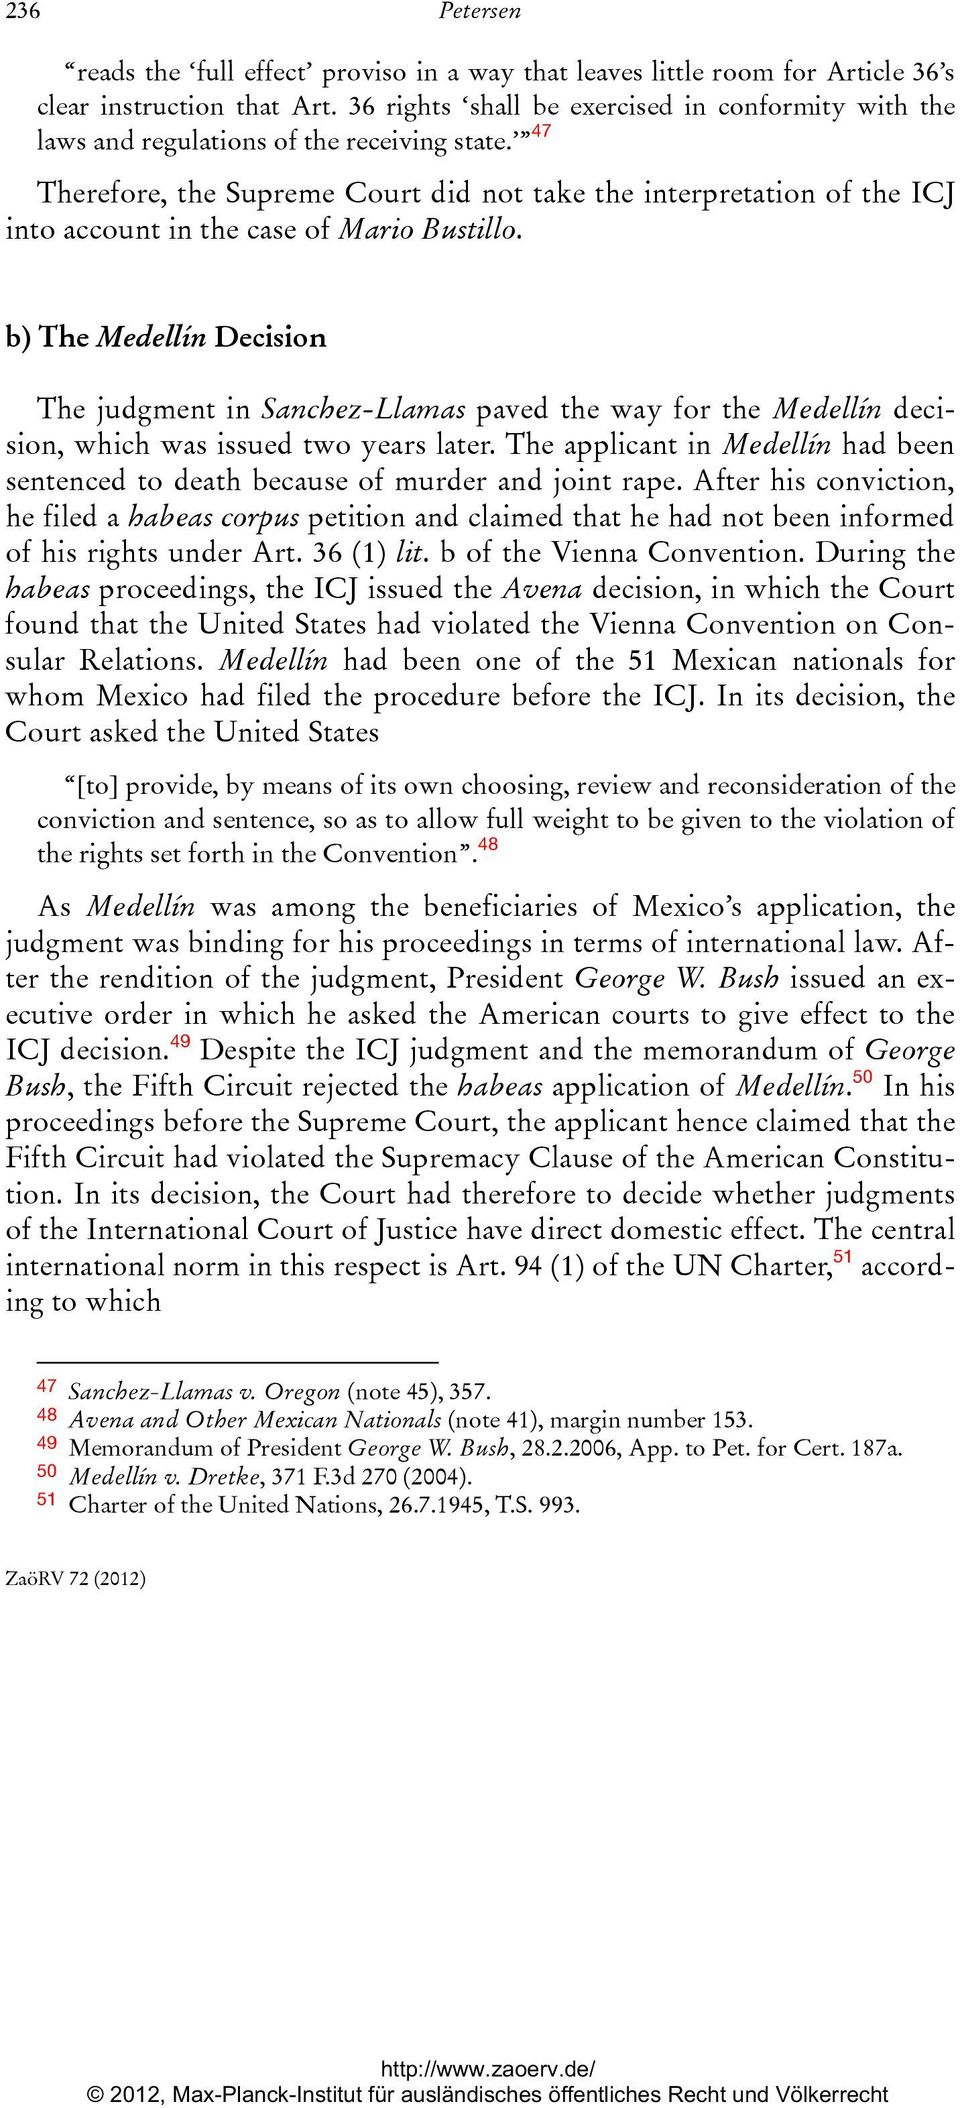 47 Therefore, the Supreme Court did not take the interpretation of the ICJ into account in the case of Mario Bustillo.